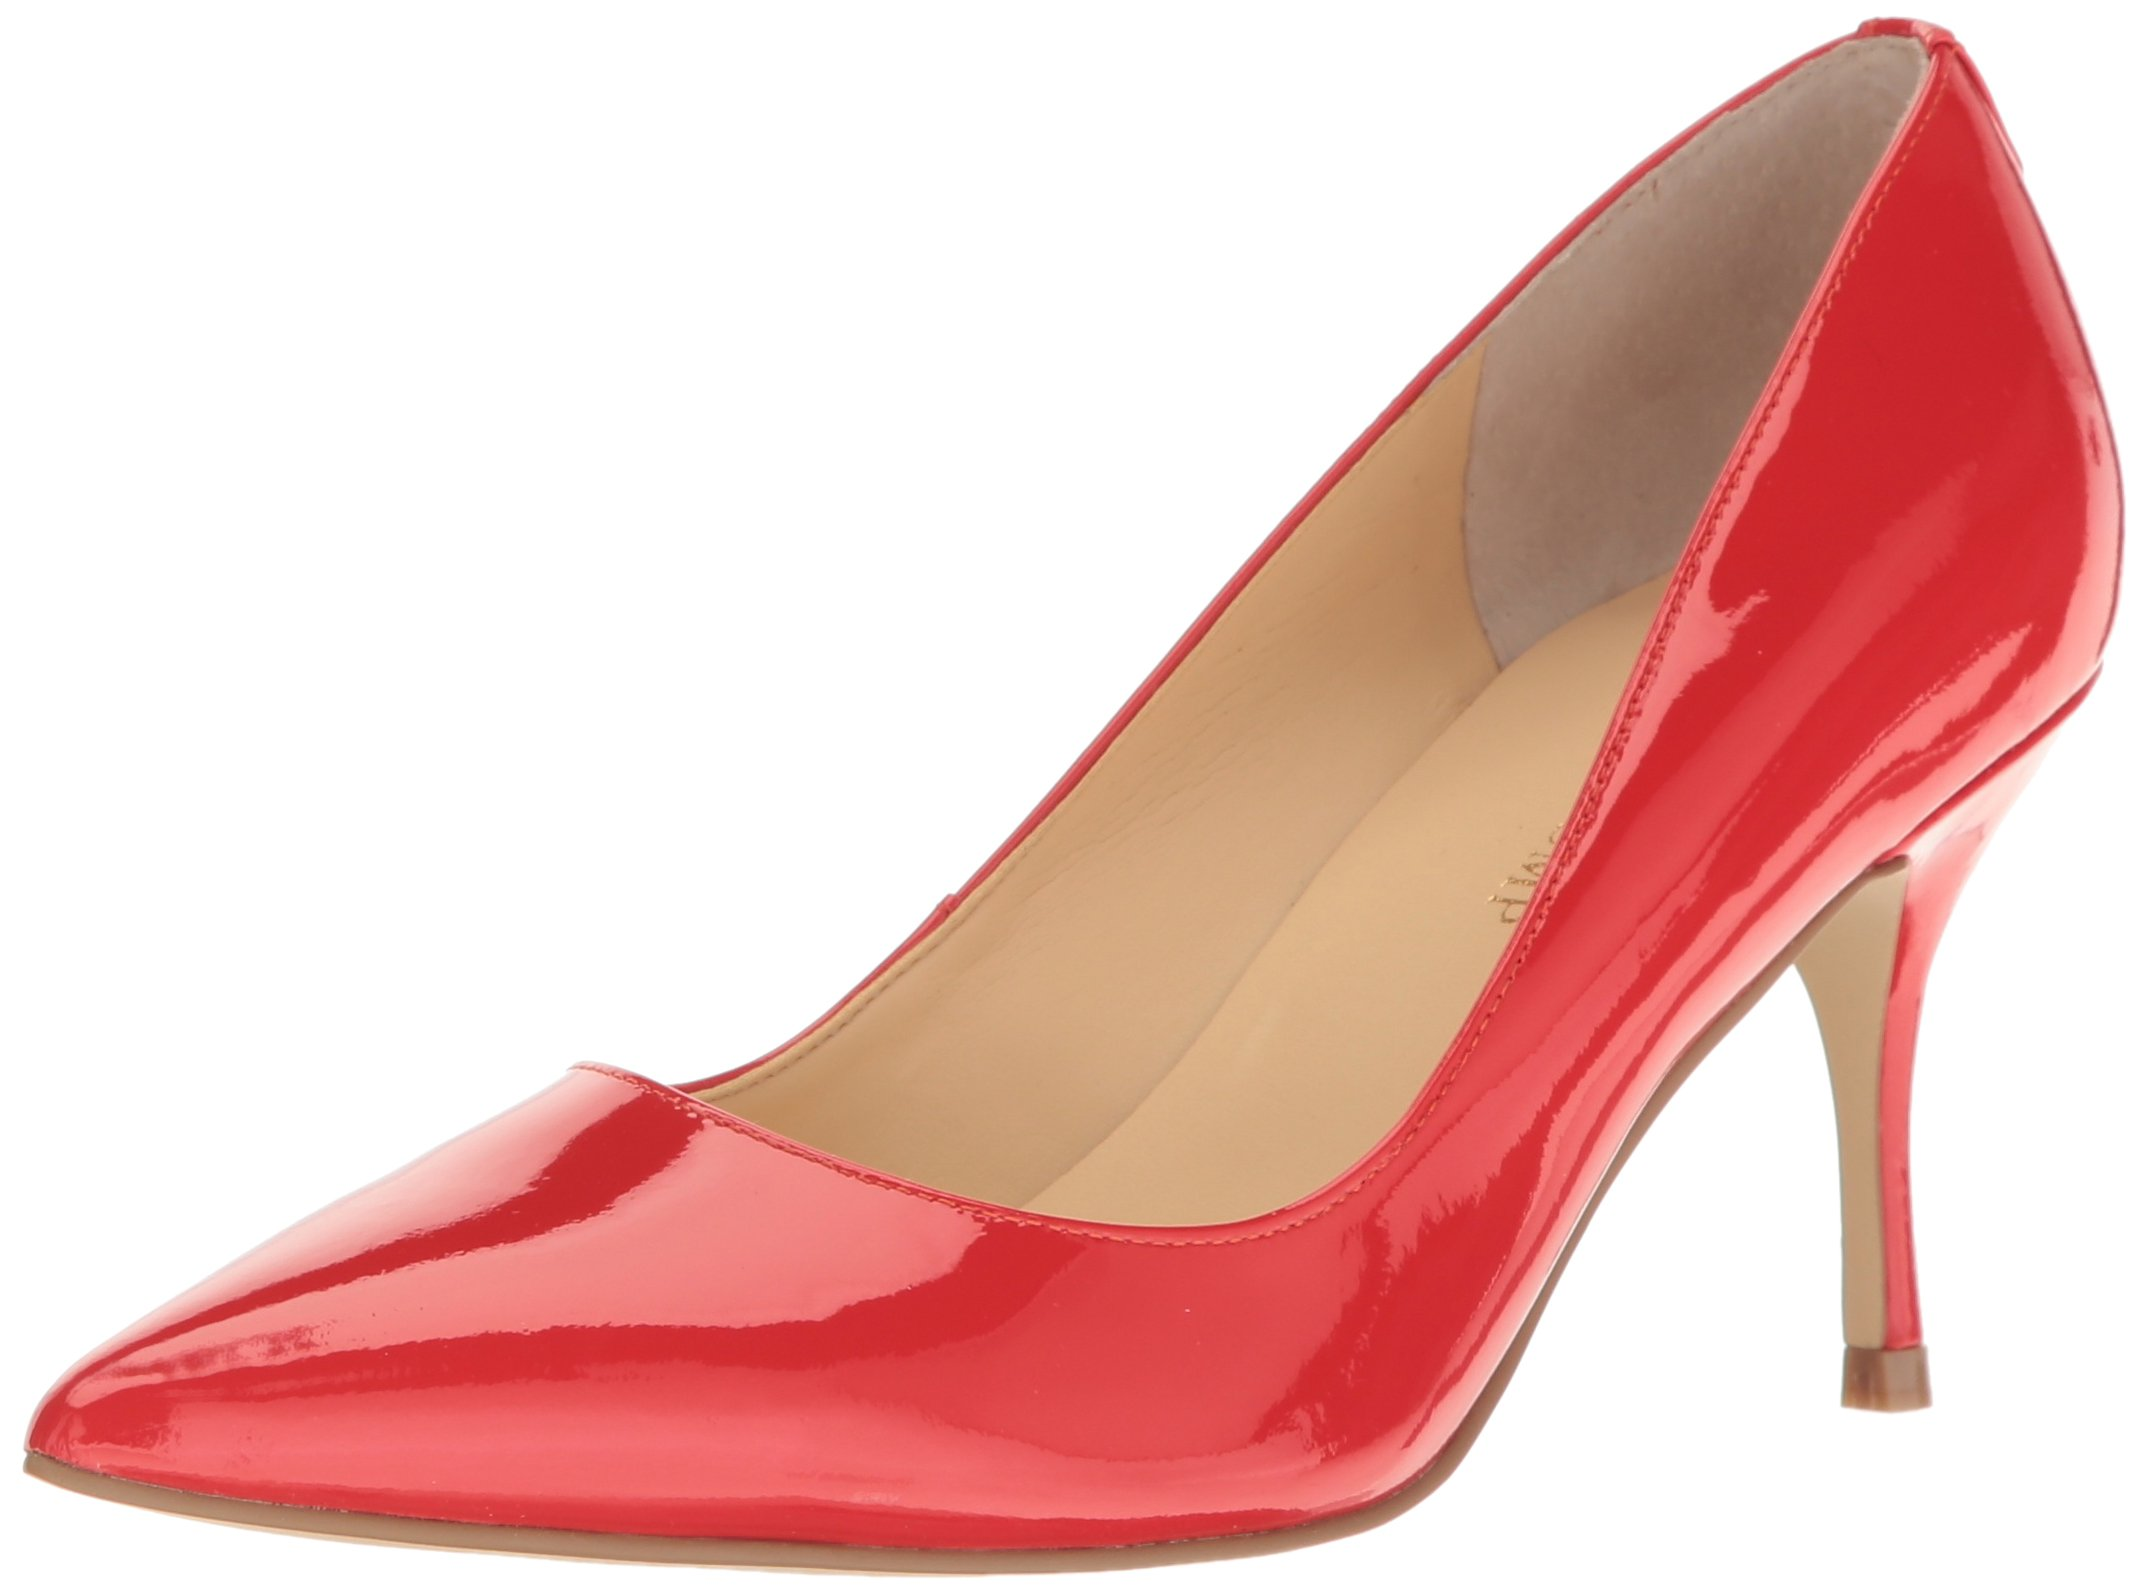 Ivanka Trump Women's Boni7 Pump, Red, 7.5 M US